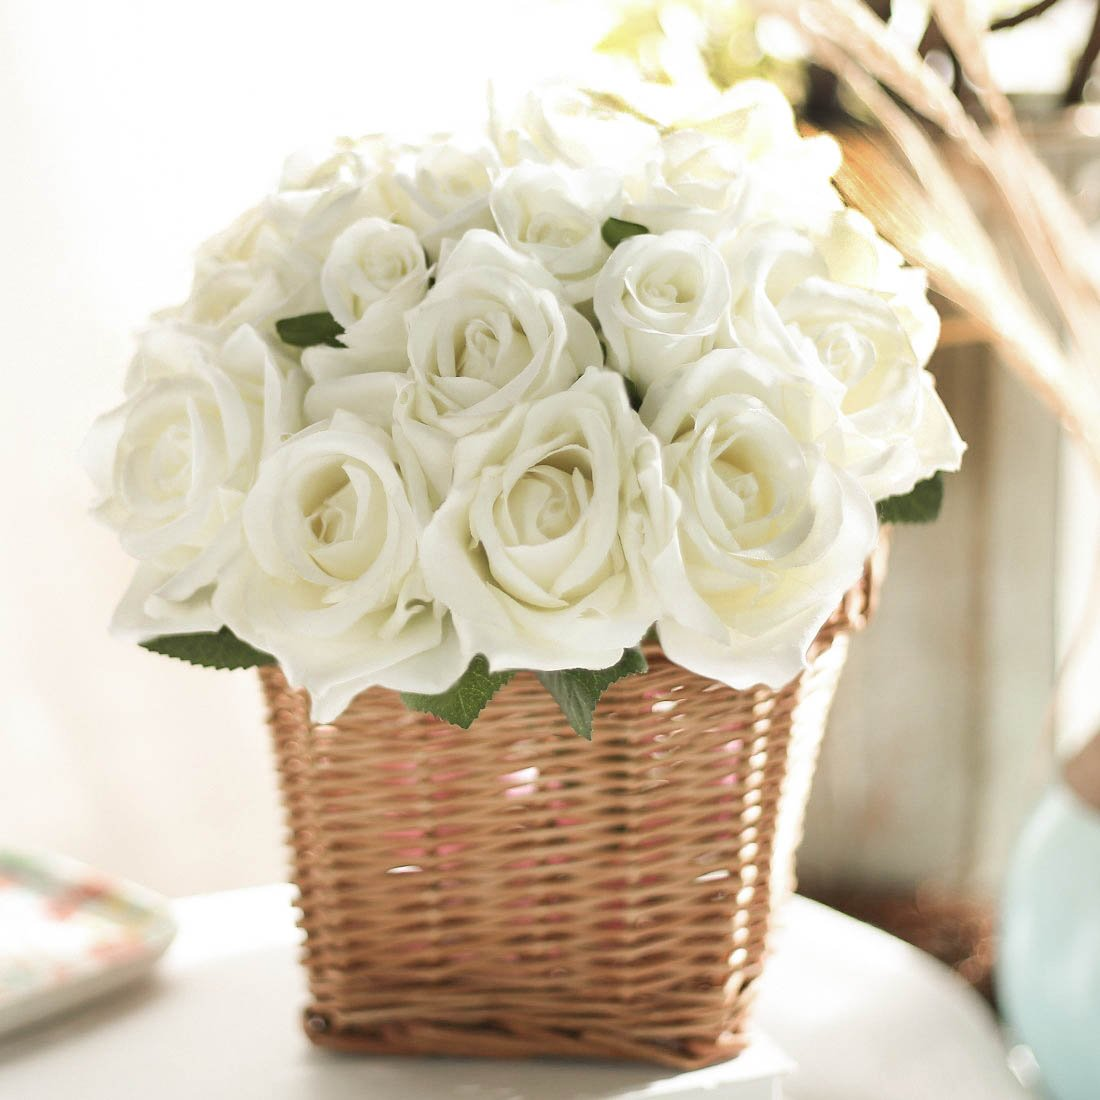 JUSTOYOU 2PCS Artificial Silk Rose Flowers Bouquet for Homes Table Wedding Arrangement (Cream White)